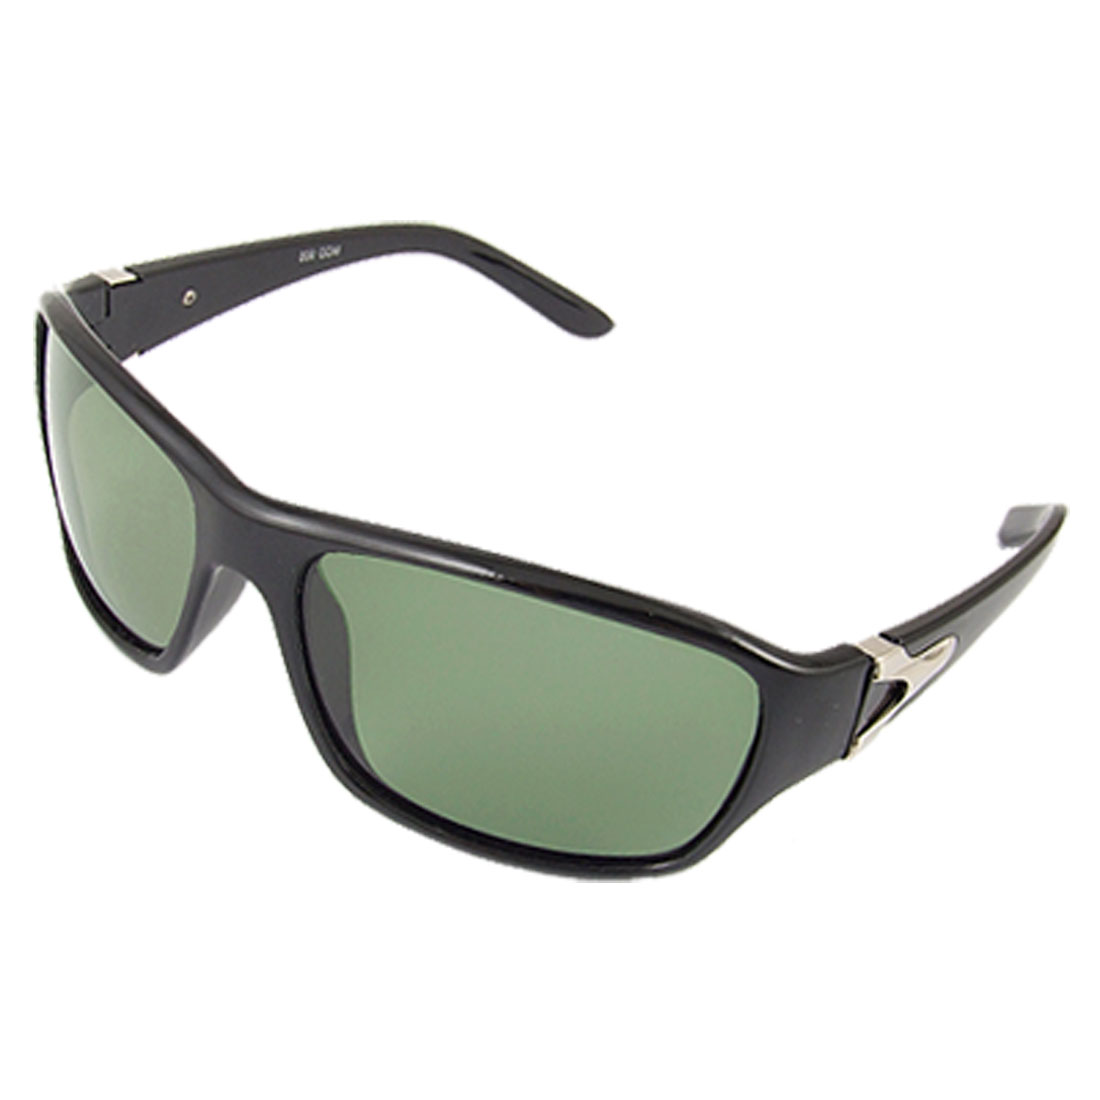 Black Full Rim Plastic Arm Polarized Sunglasses Eyewear for Lady